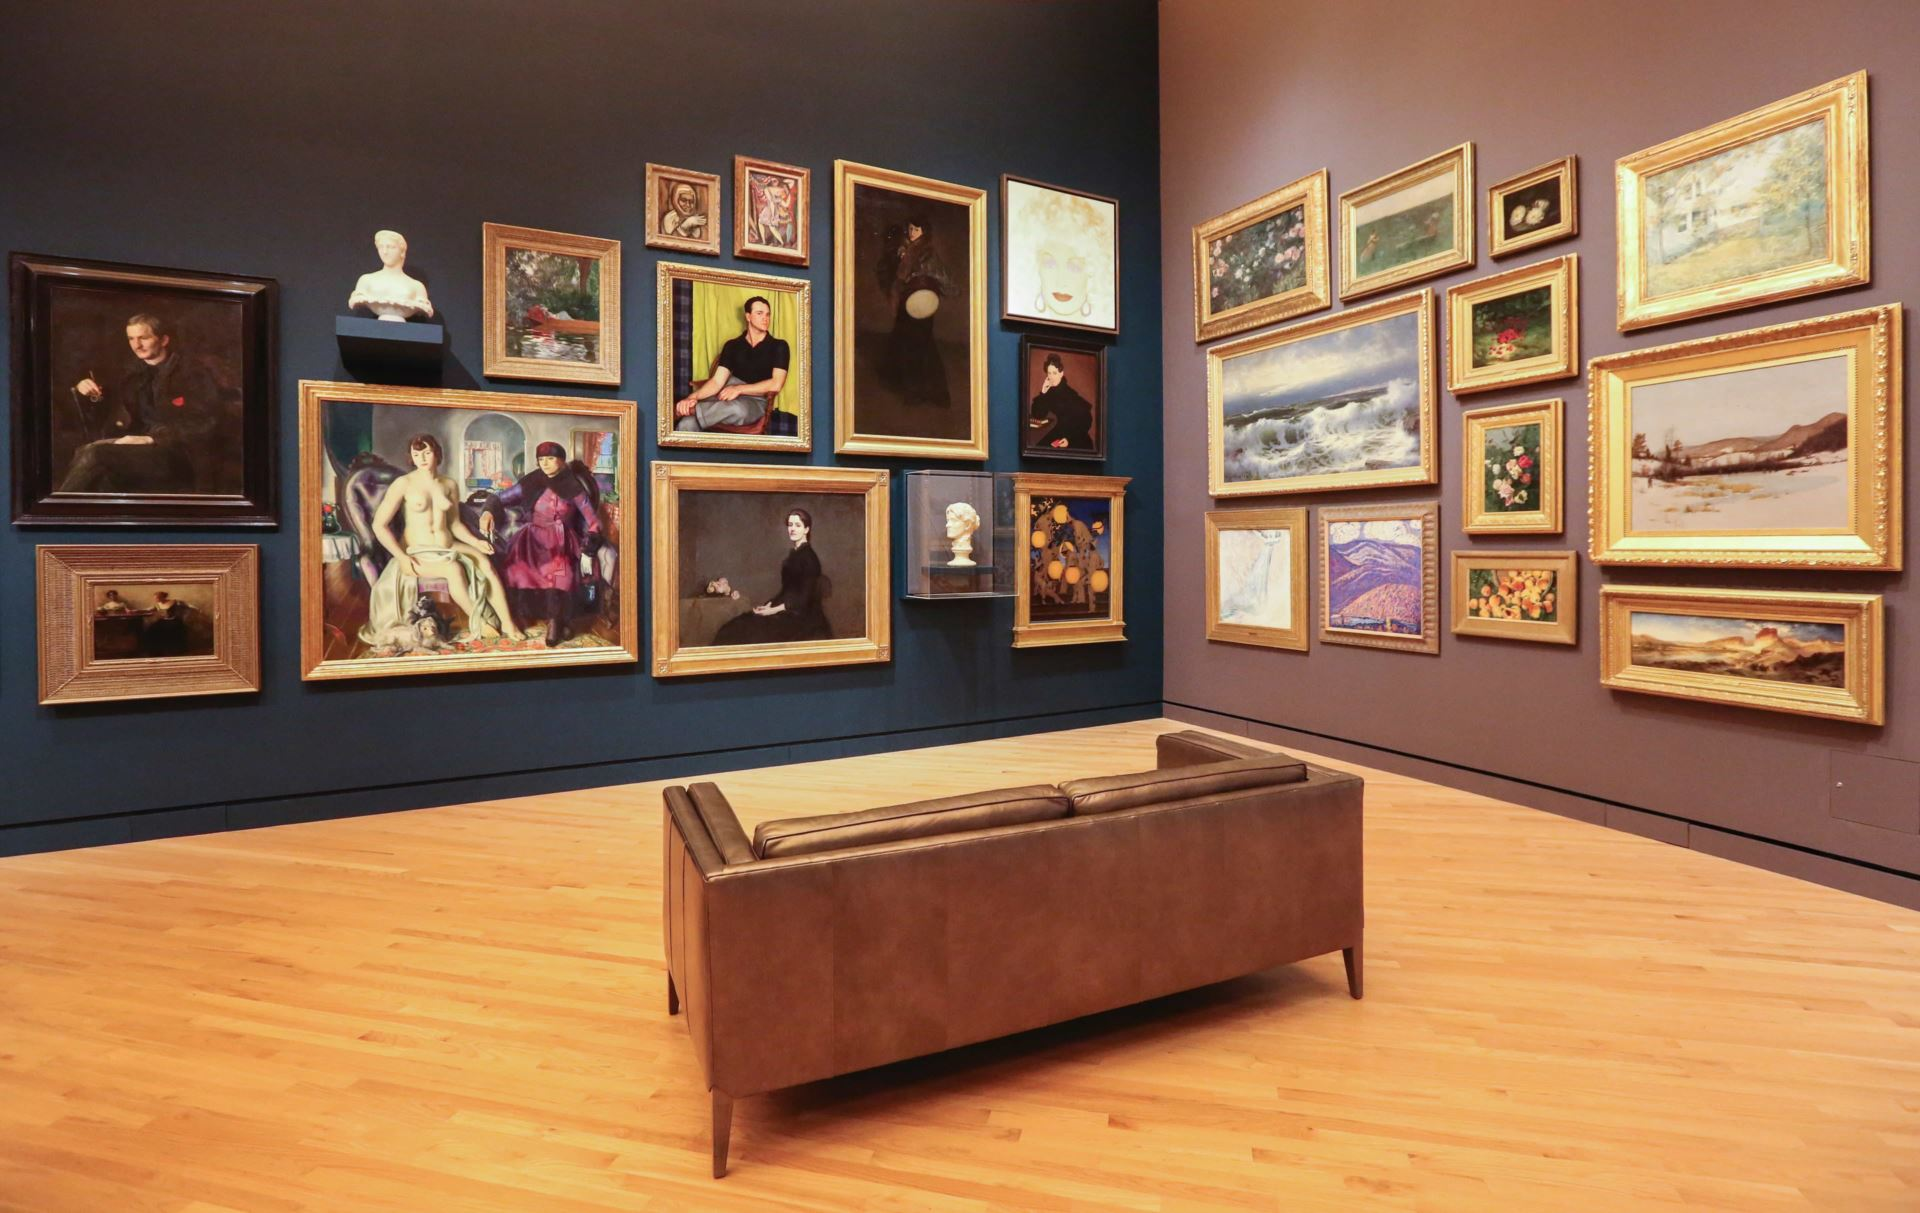 Things Collectors Should Know As collectors increasingly manage their art collections from an investment perspective, they are increasingly open to art lending as a tool to re-deploy capital across their balance sheets.